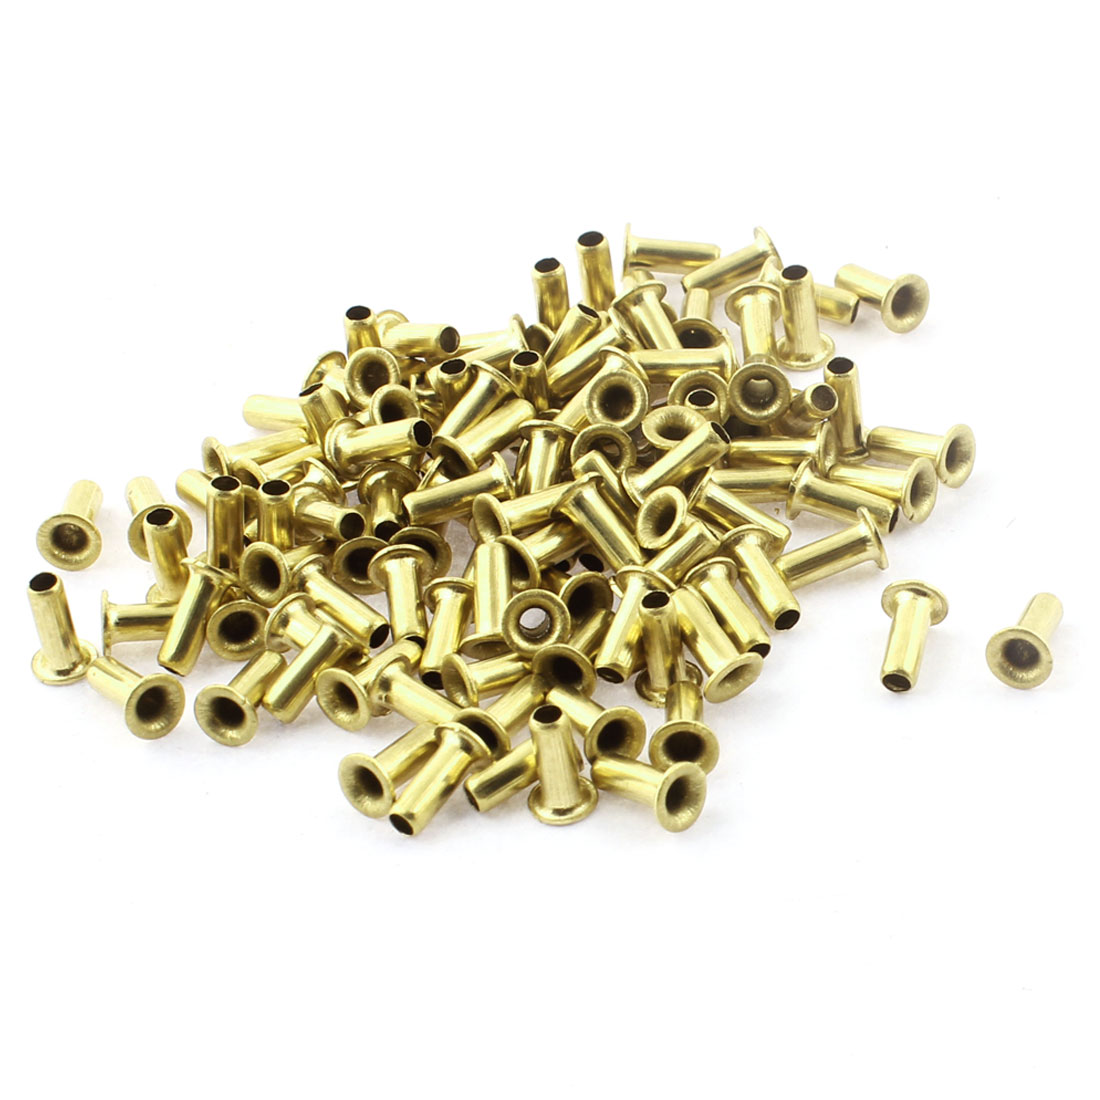 120pcs M3 x 8mm Copper Through Hole Hollow Rivets Grommets Double-sided Circuit Board PCB Via Vias Nails Fastener